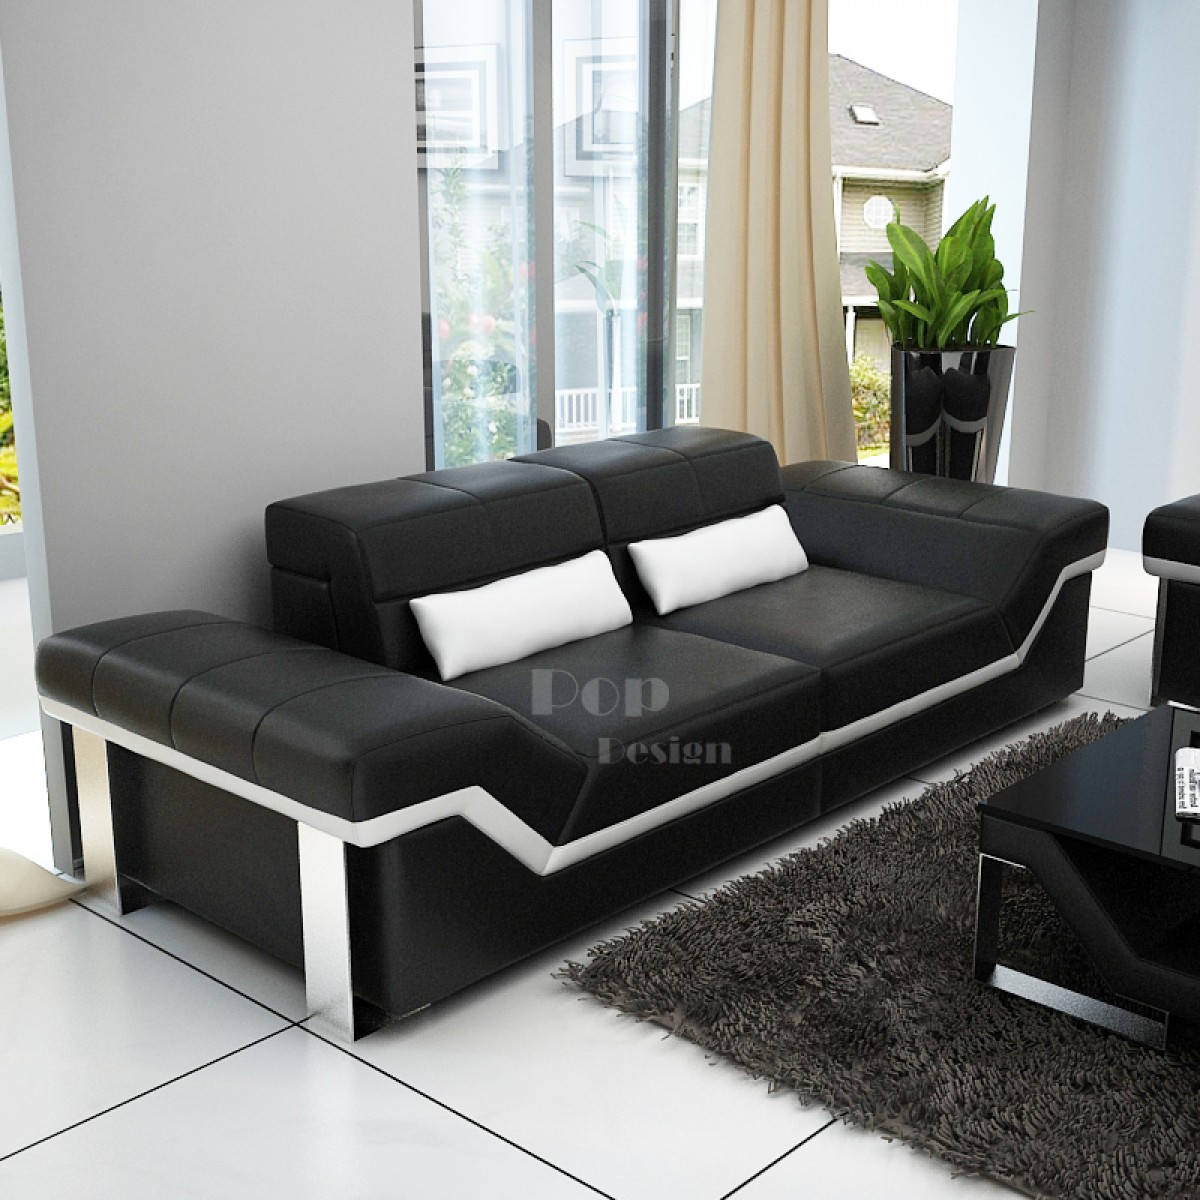 Canap design 3 places en cuir pleine fleur torino pop - Canape design 3 places ...